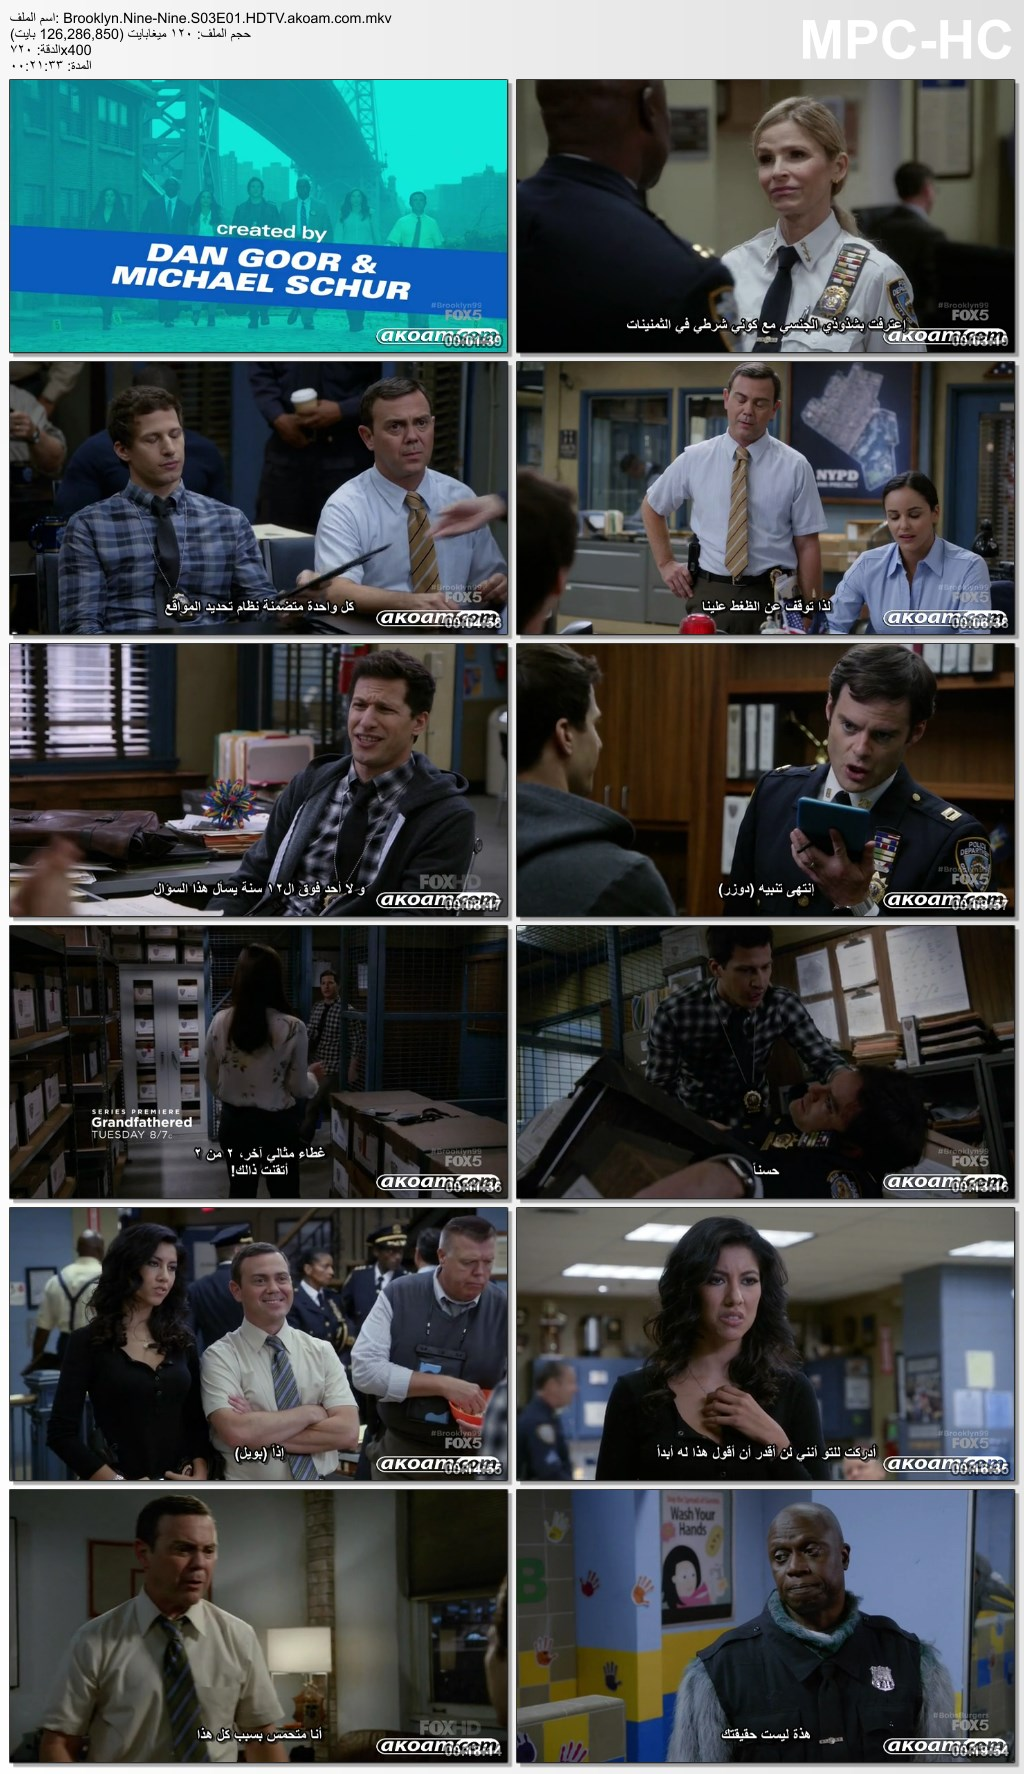 Brooklyn Nine,Brooklyn Nine-Nine,Brooklyn Nine-Nine 2015